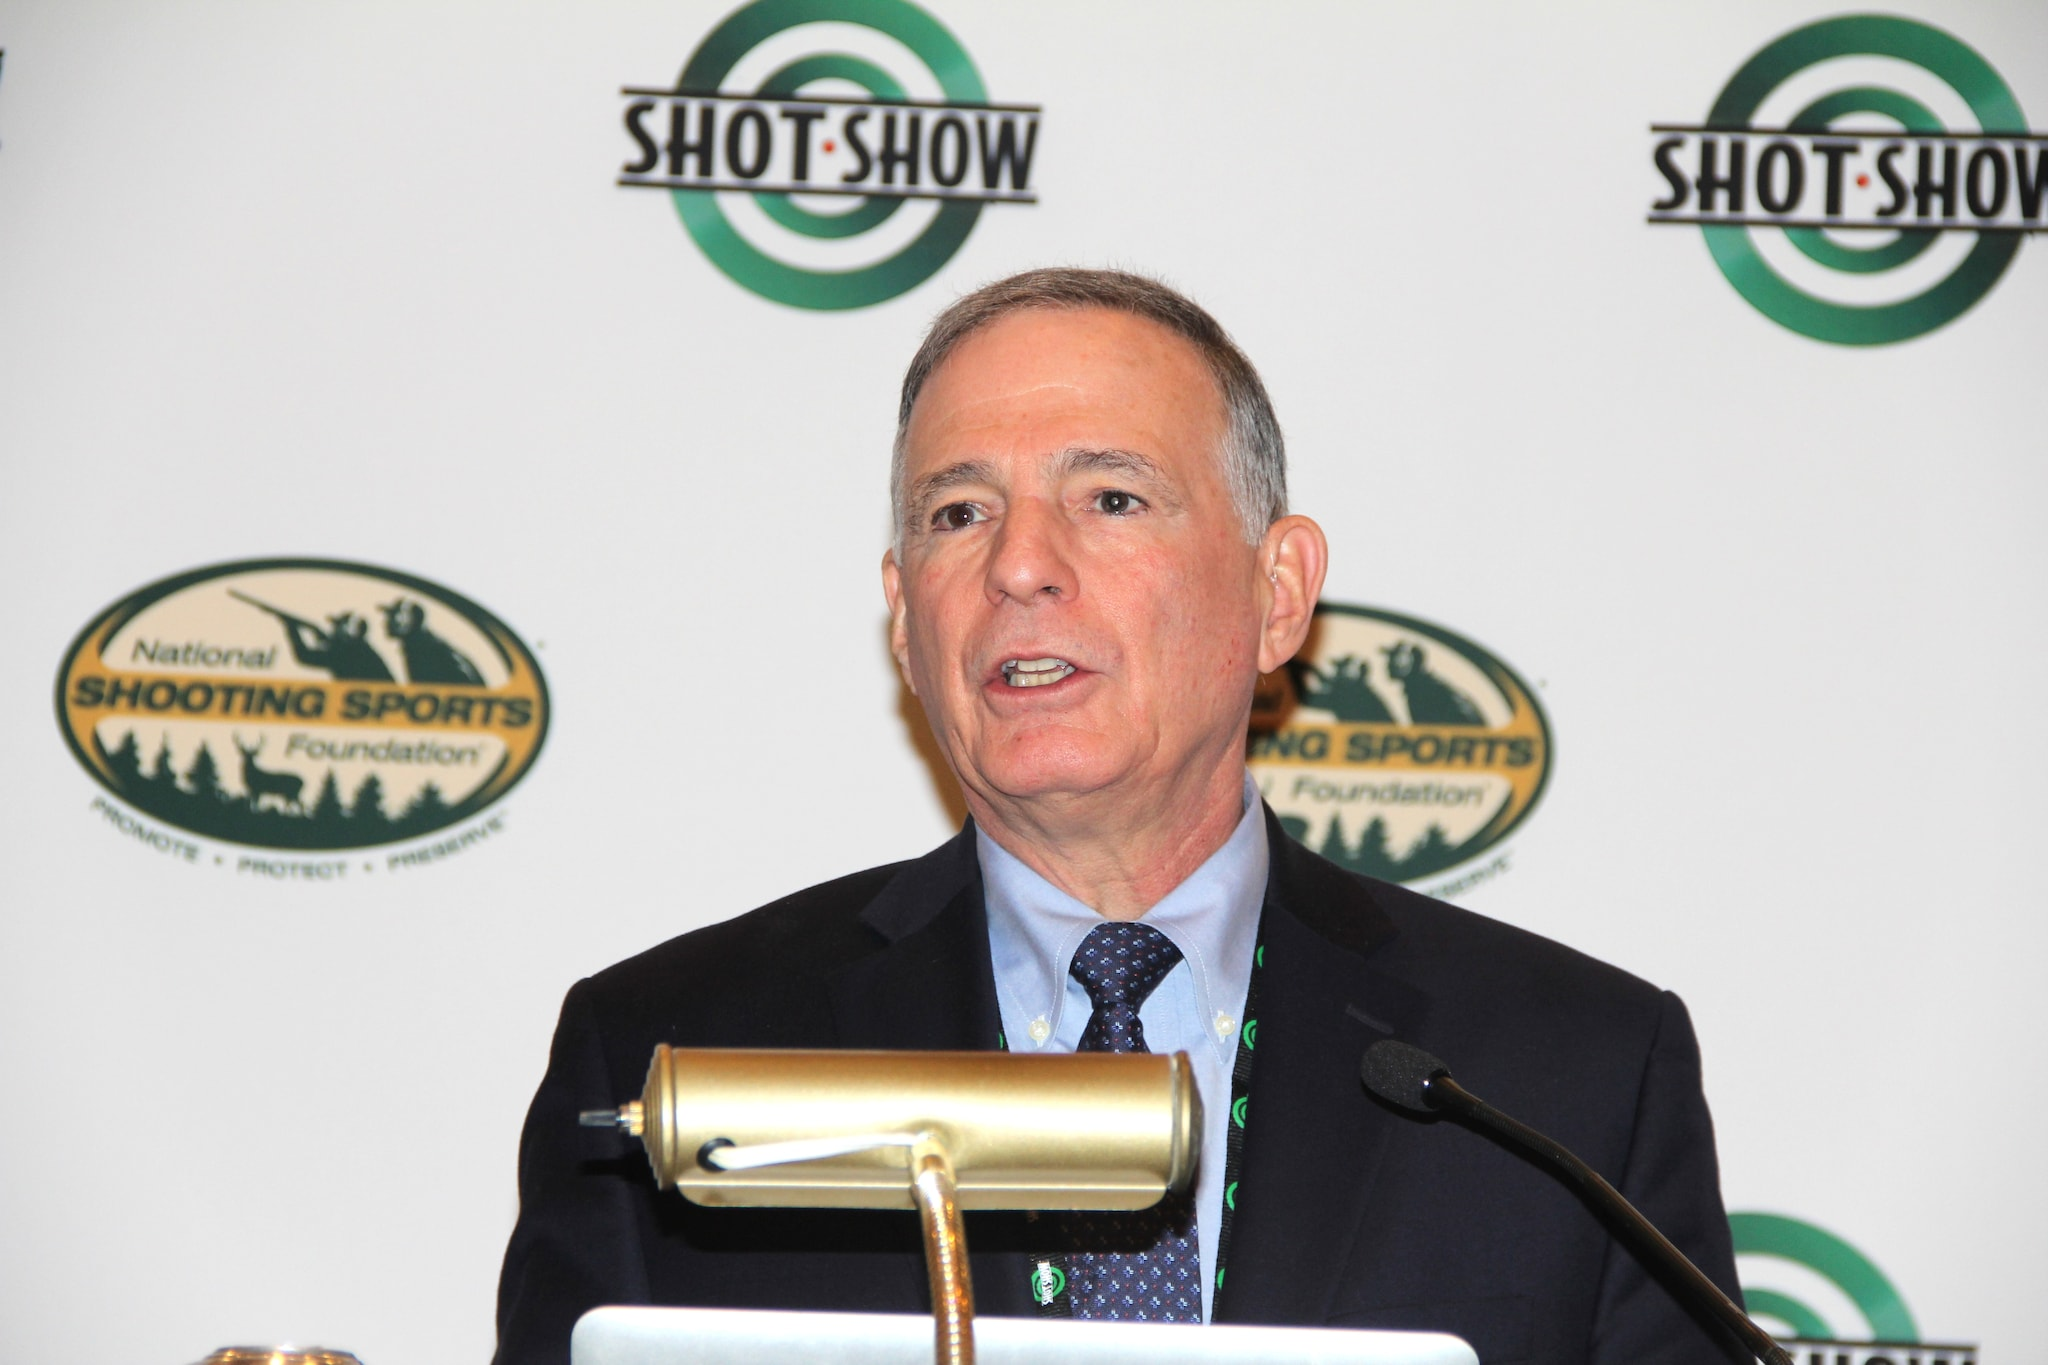 Steve Sanetti, NSSF president and CEO